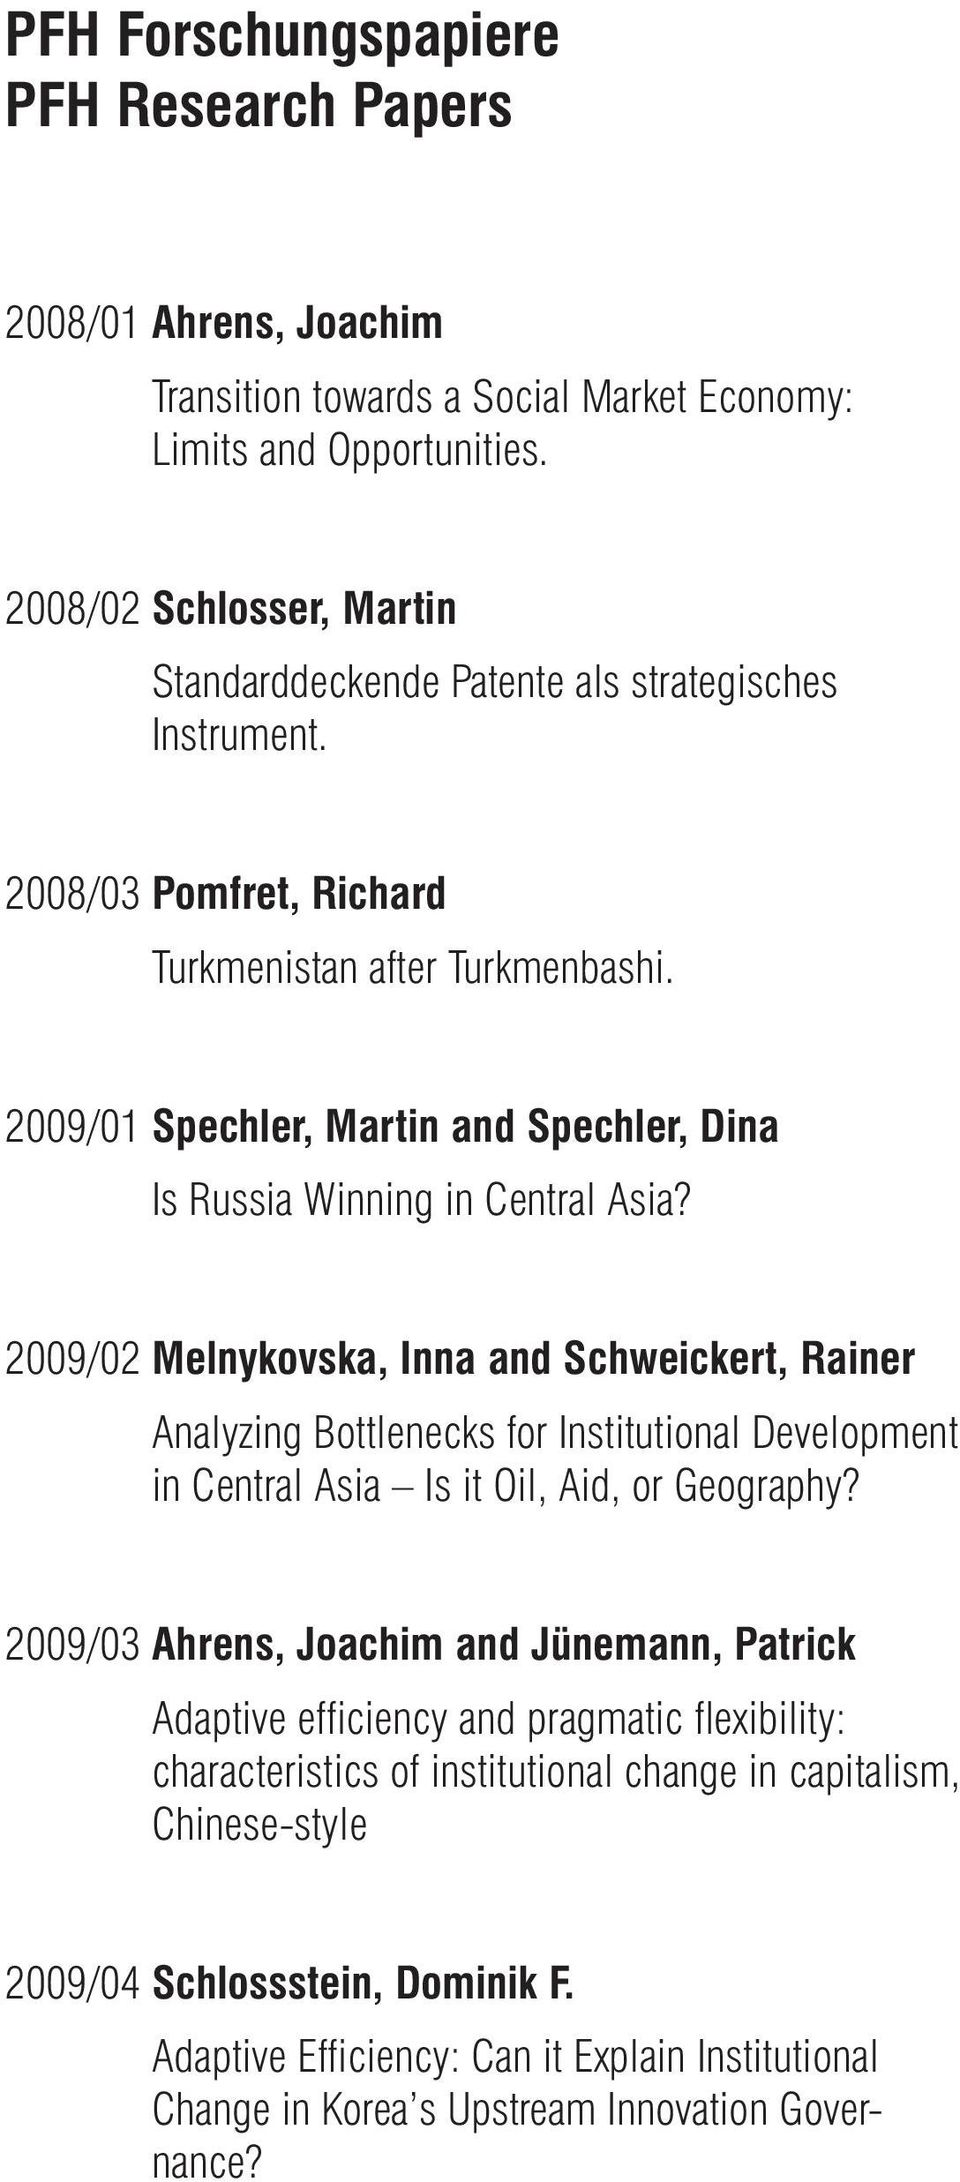 2009/01 Spechler, Martin and Spechler, Dina Is Russia Winning in Central Asia?